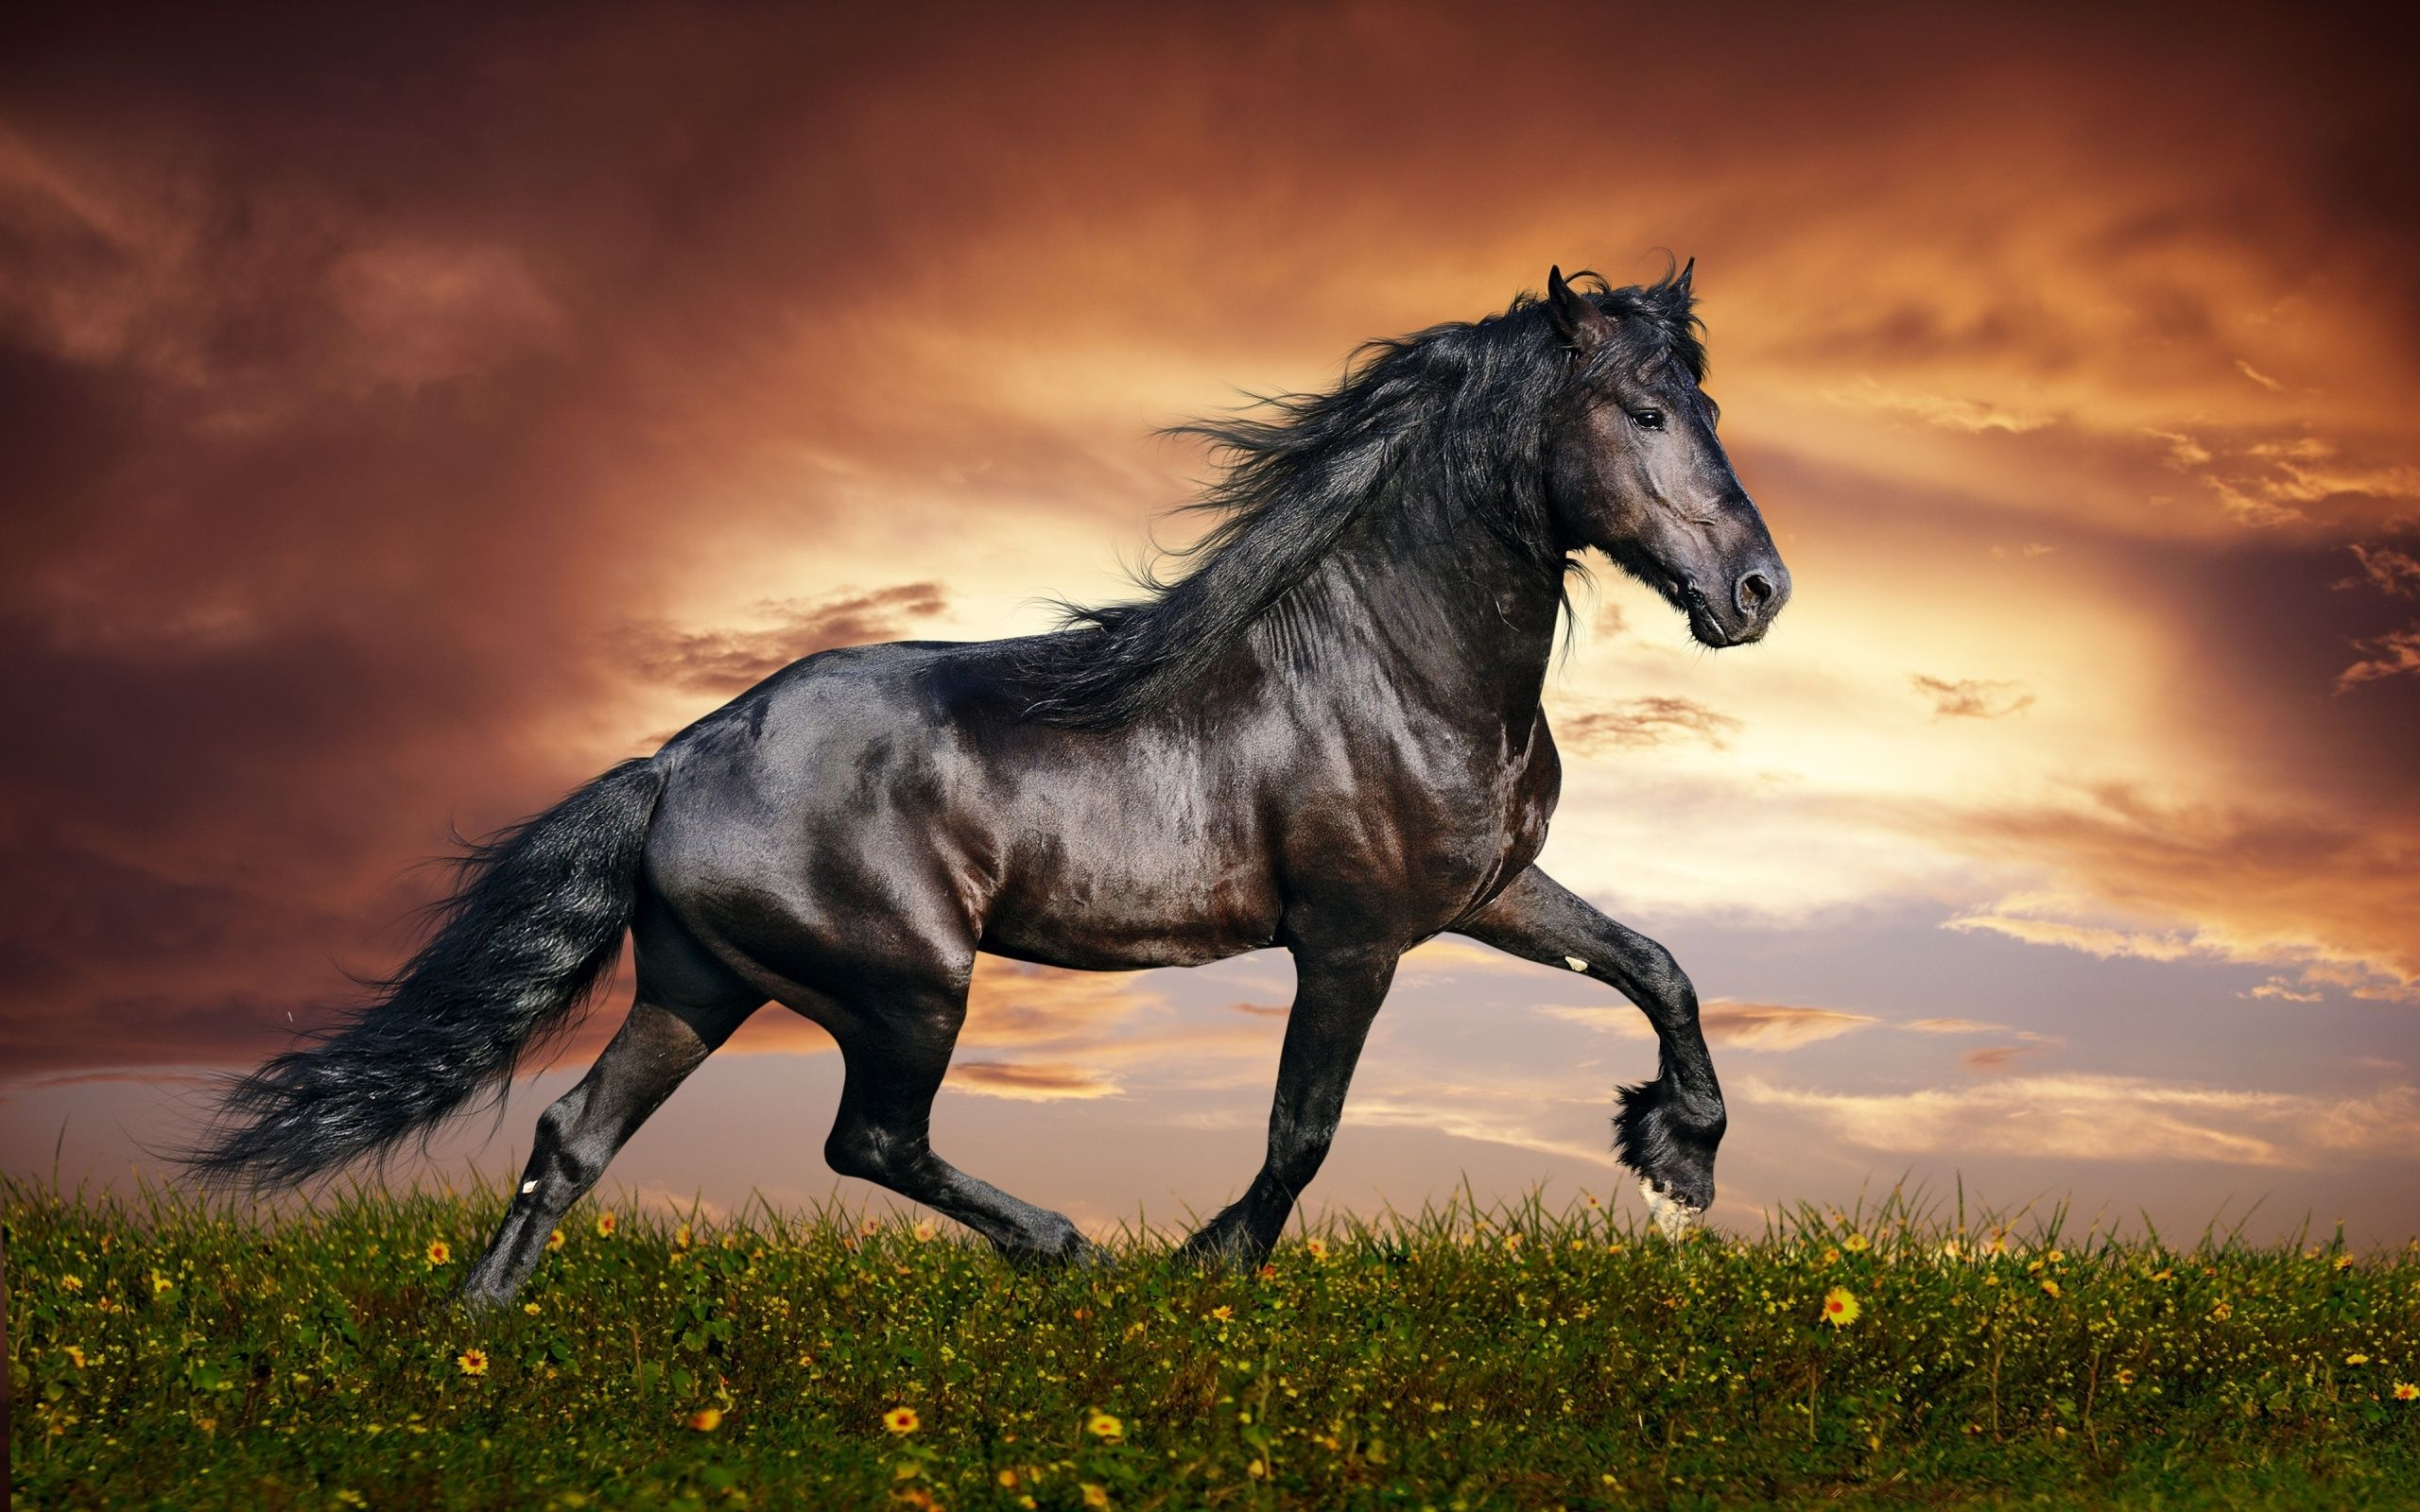 Pin On Horse Free Animal Wallpapers